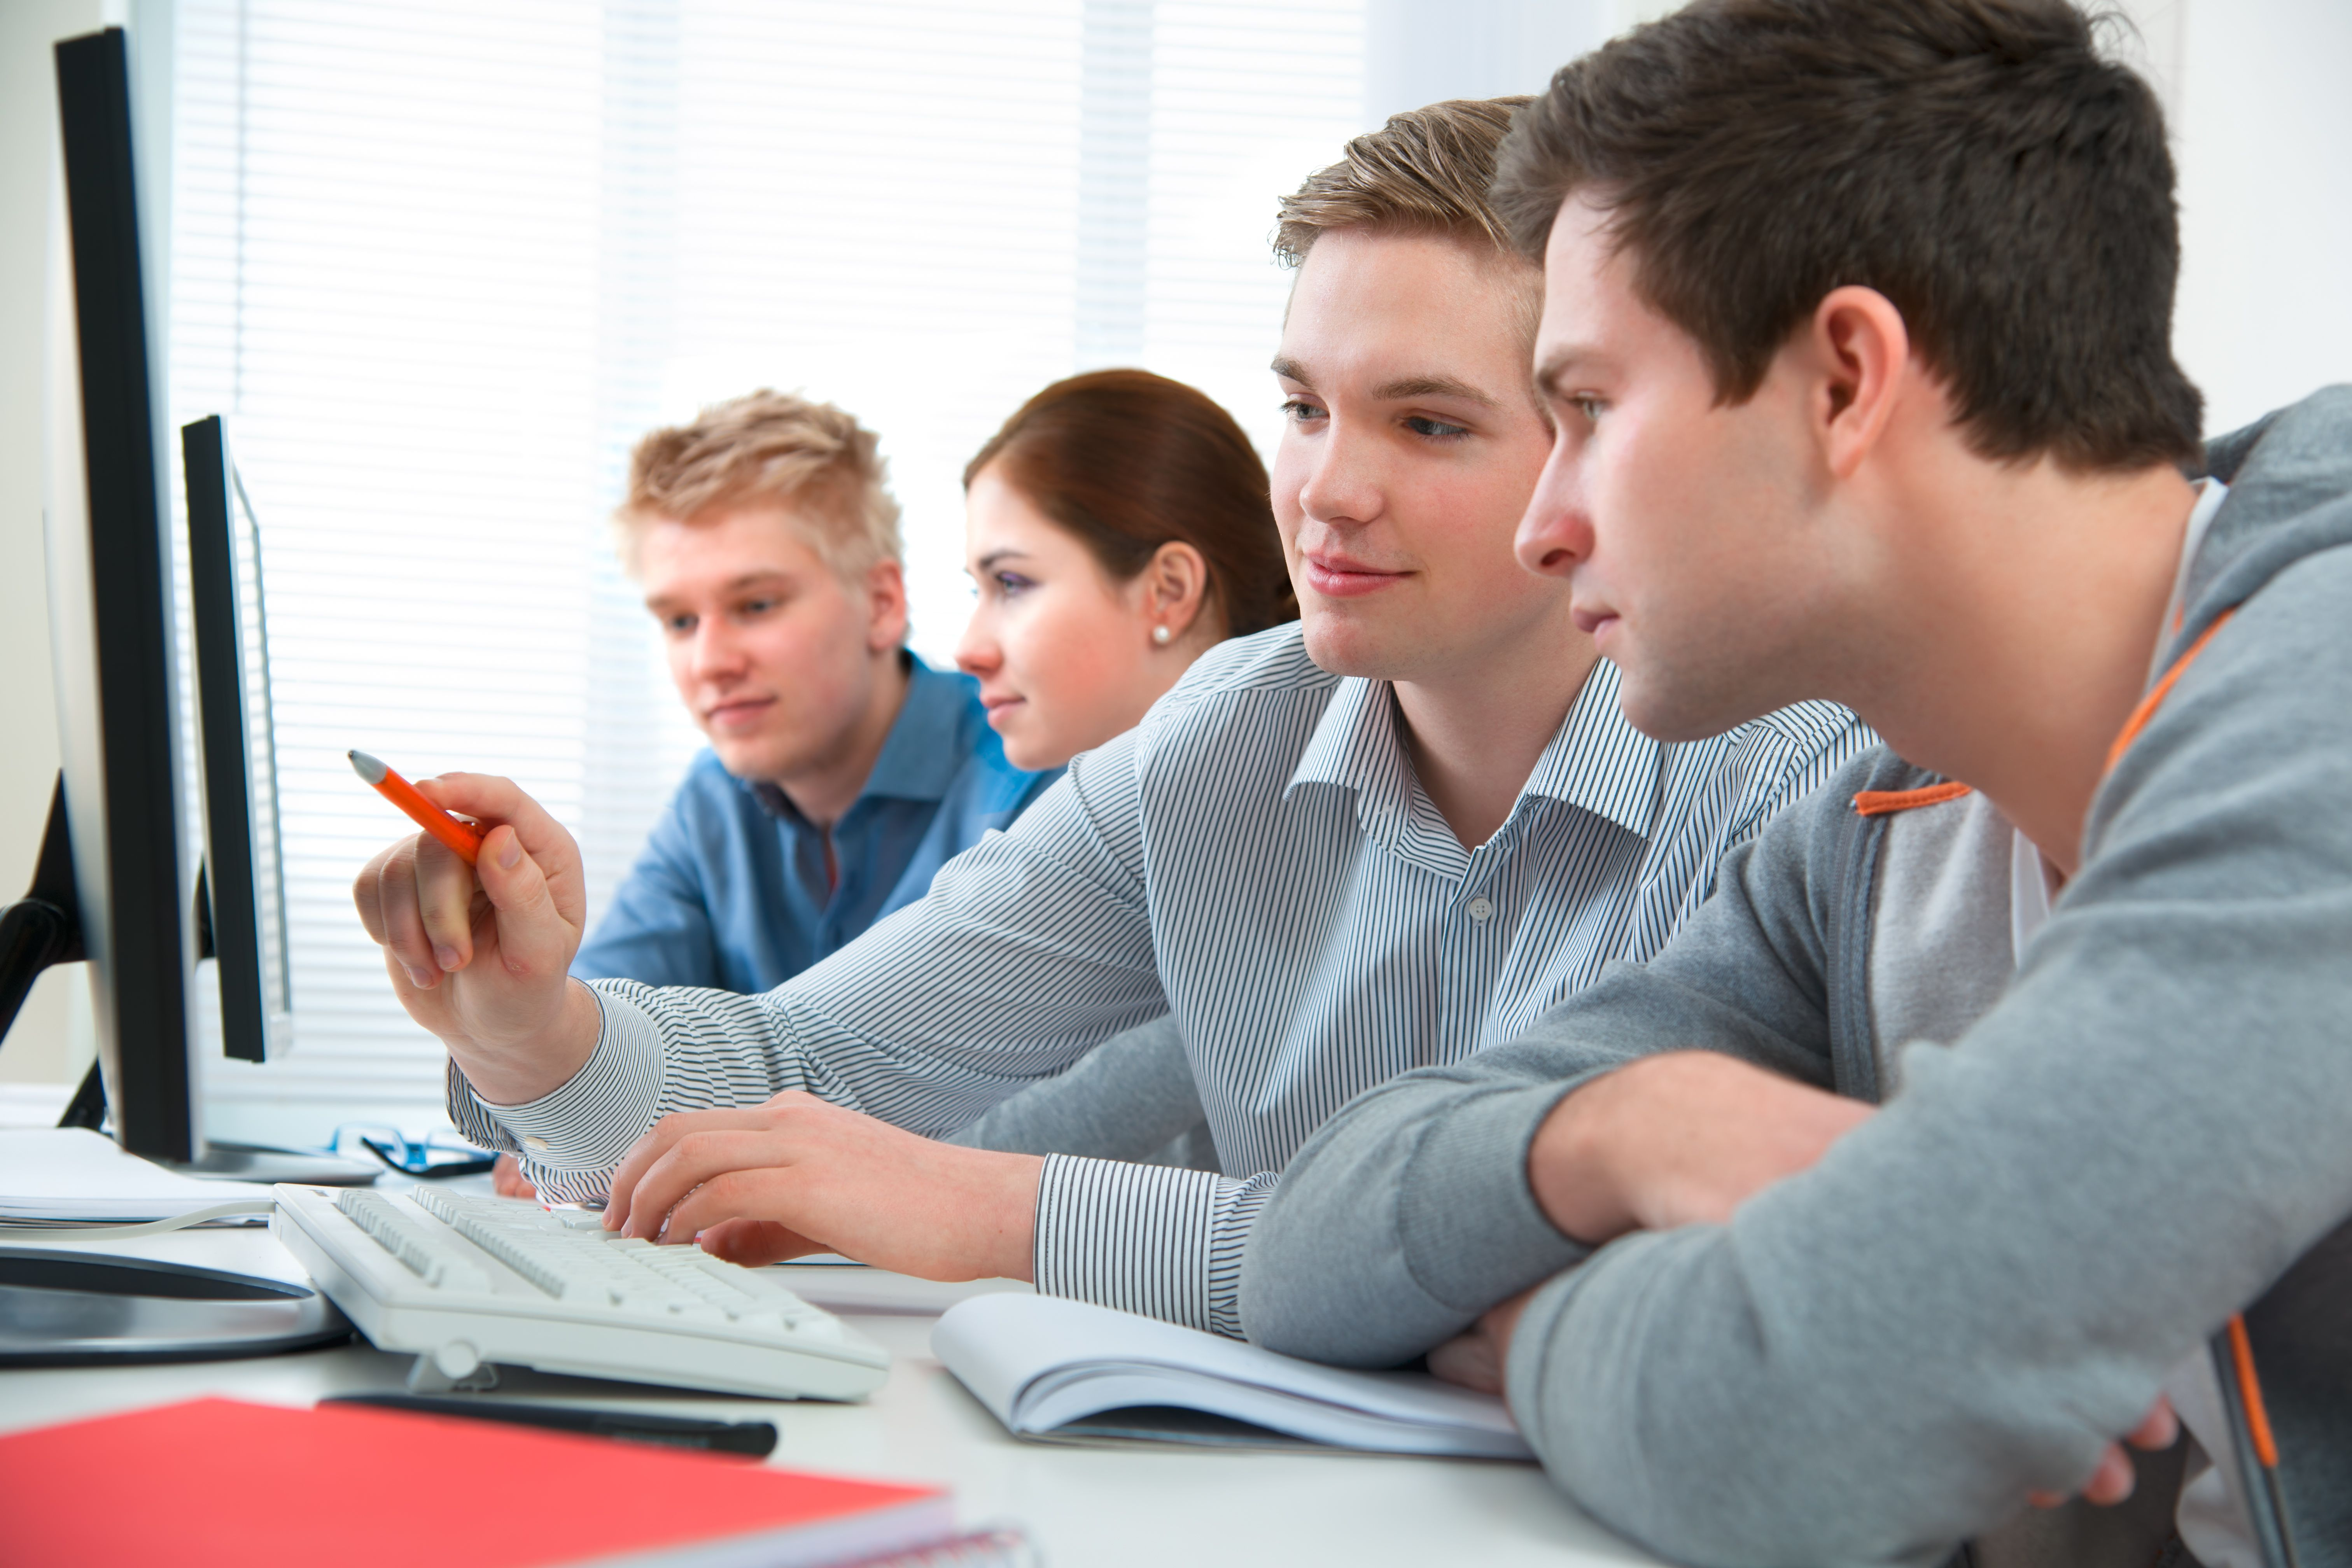 Face to face study is primarily a virtual classroom where